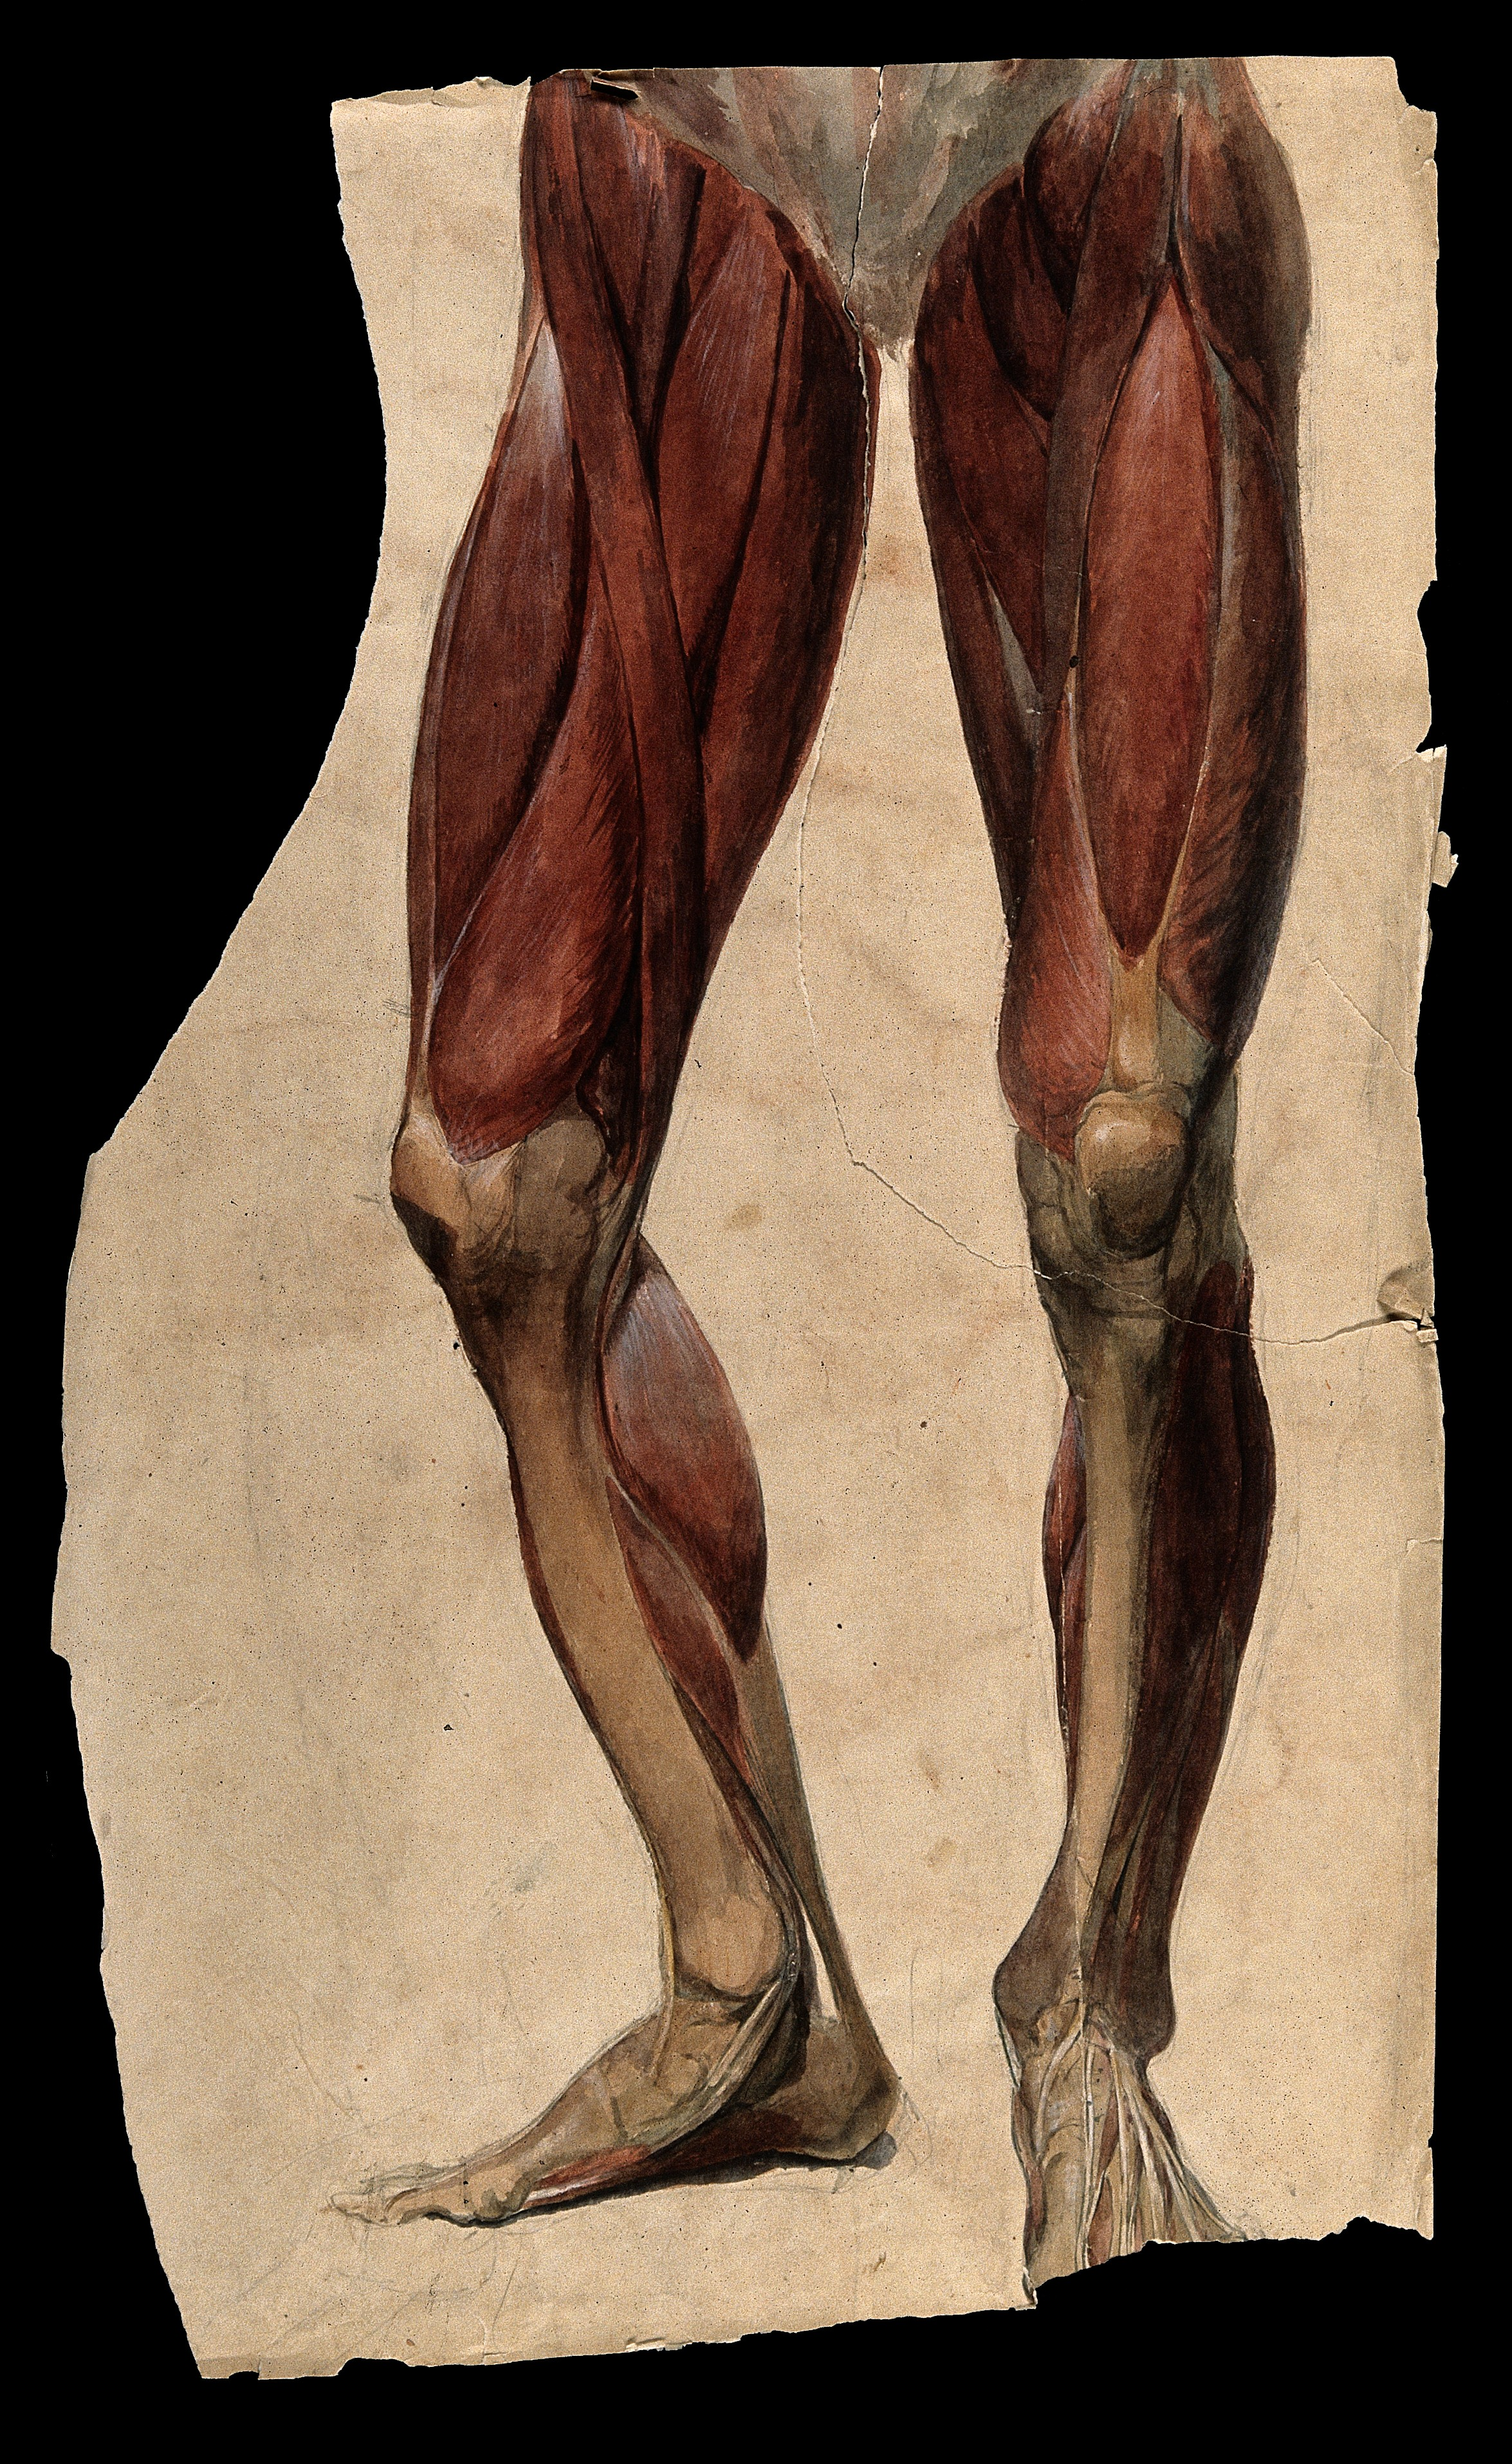 image source: https://commons.wikimedia.org/wiki/File:Muscles_and_tendons_of_the_legs_and_feet;_écorch_́figur_Wellcome_V0008276.jpg